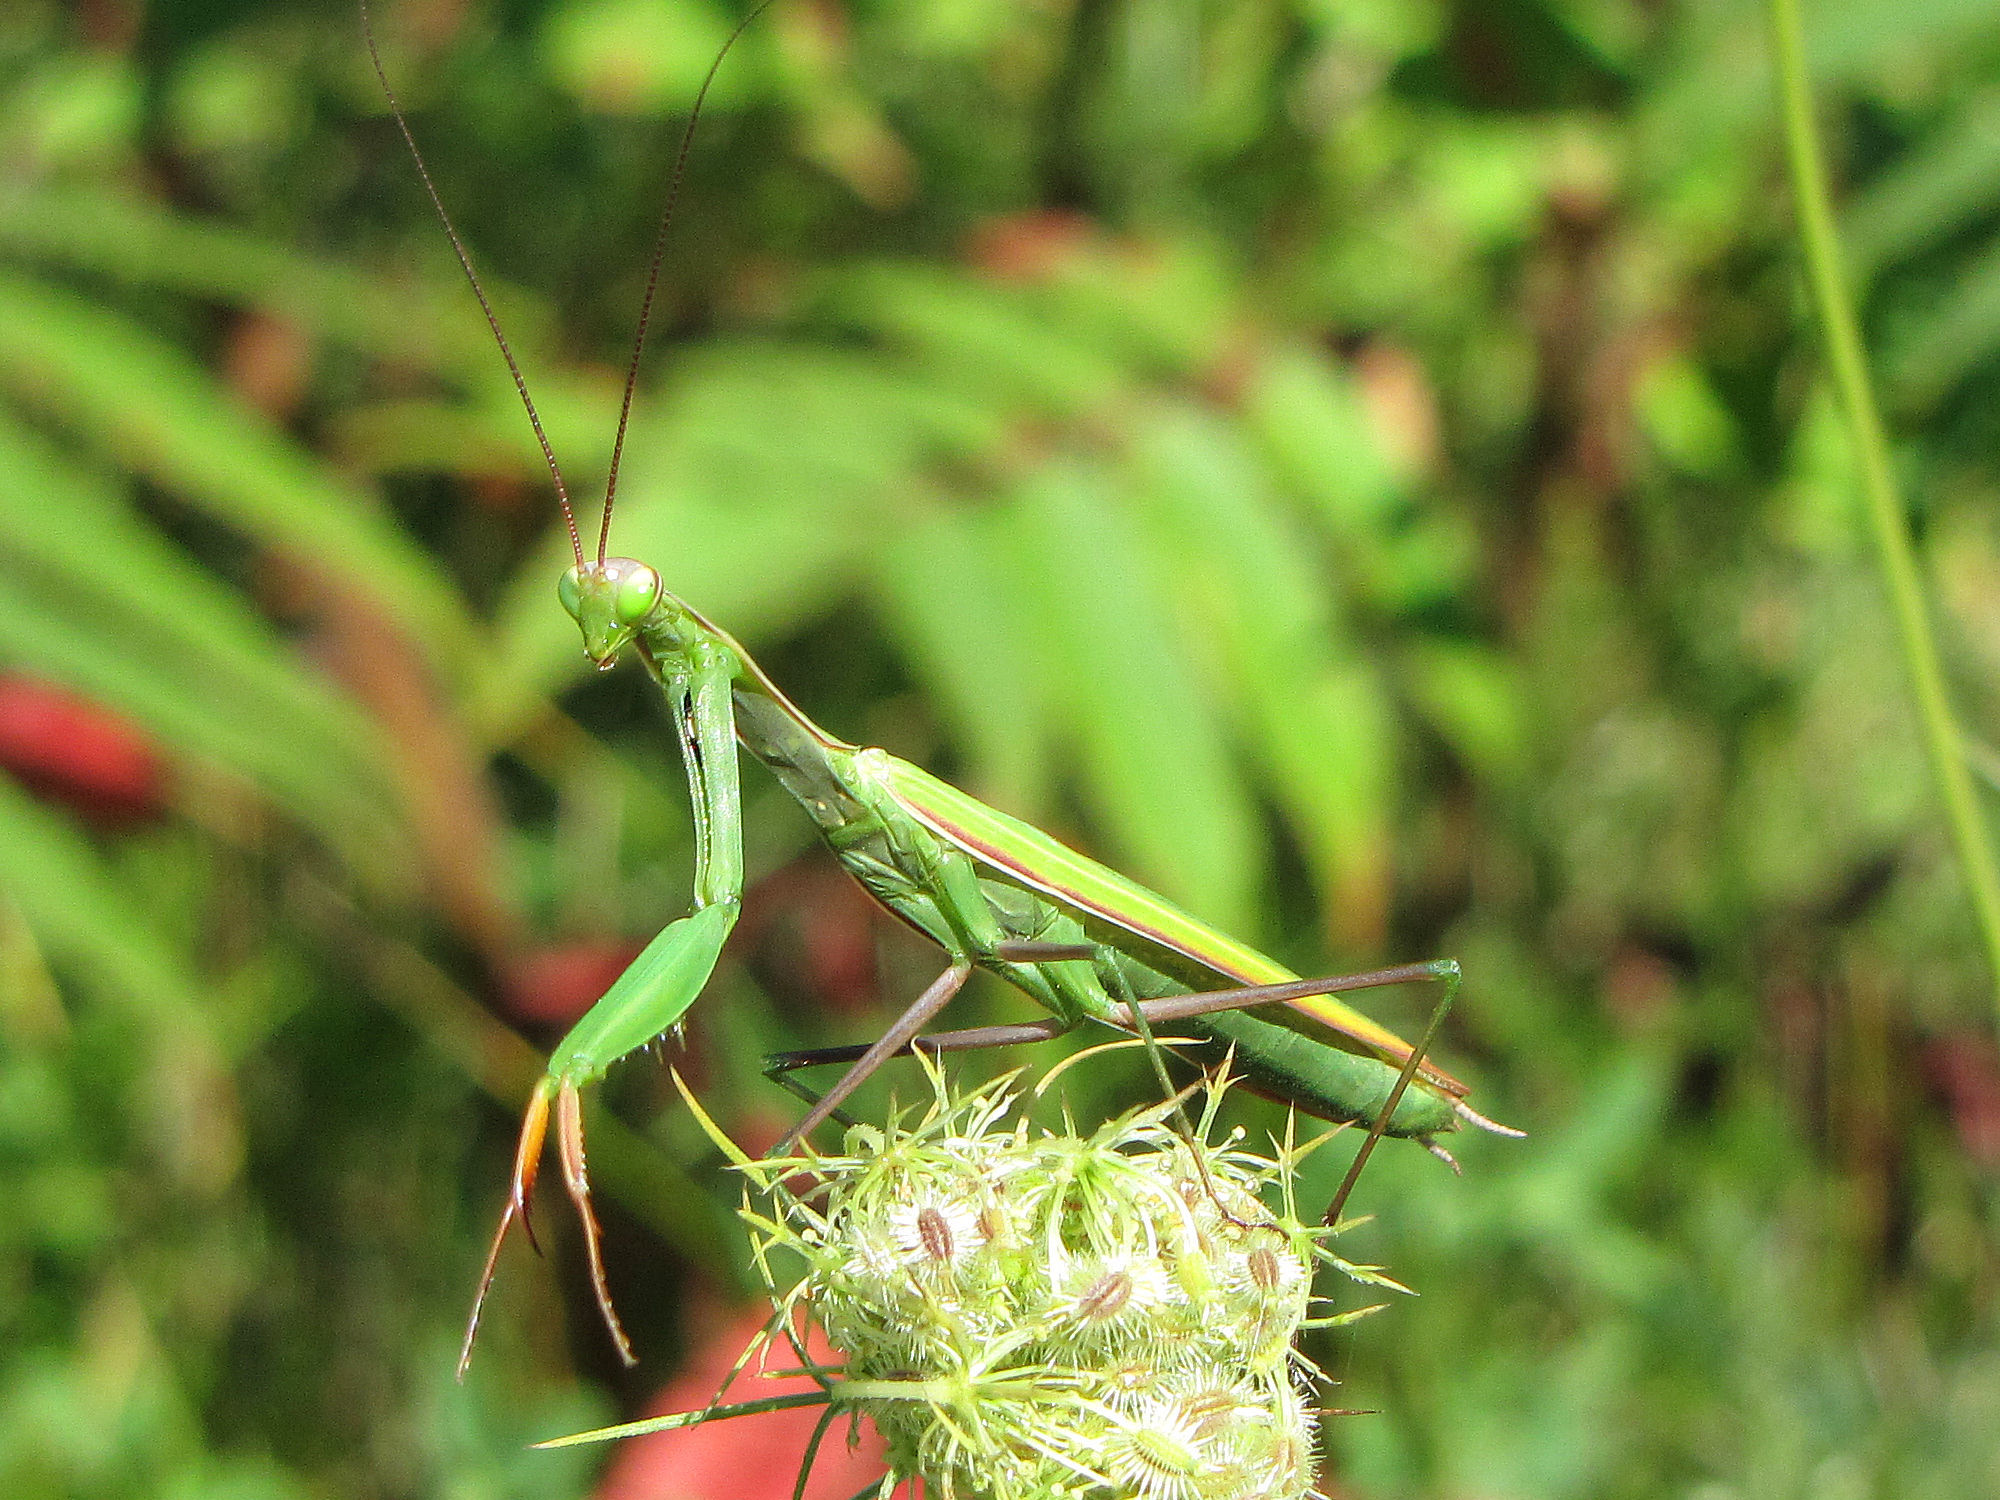 File:Praying Mantis, Ontario.jpg - Wikimedia Commons